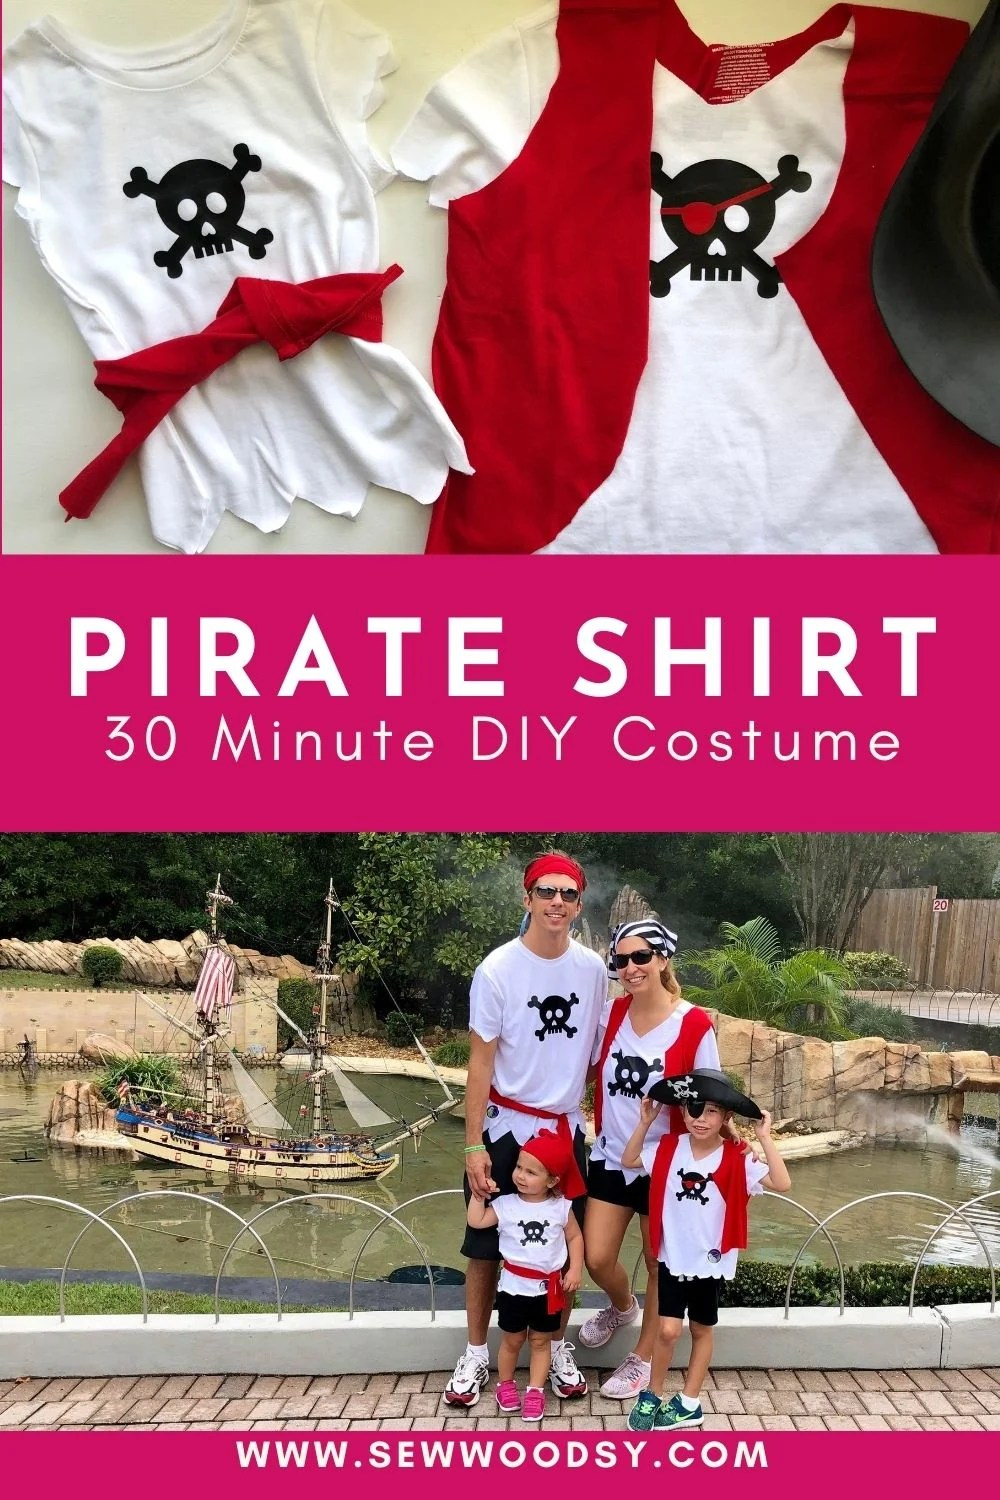 Two photos of pirate shirt costumes divided by text for Pinterest.